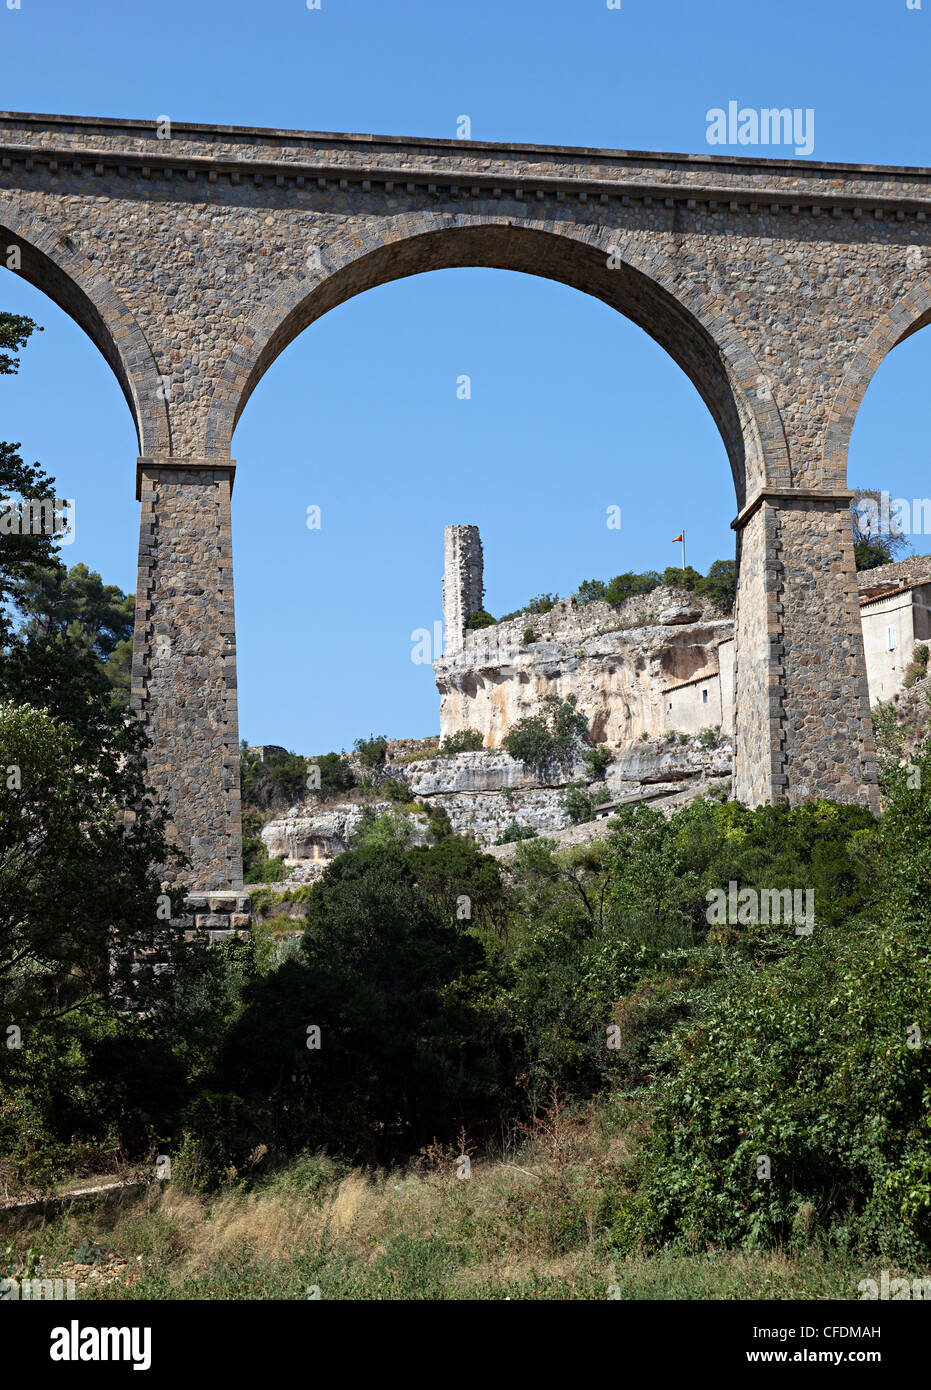 Ruined castle tower seen through arch of ancient bridge at Minerve, a Cathar Languedoc village, Herault, France - Stock Image